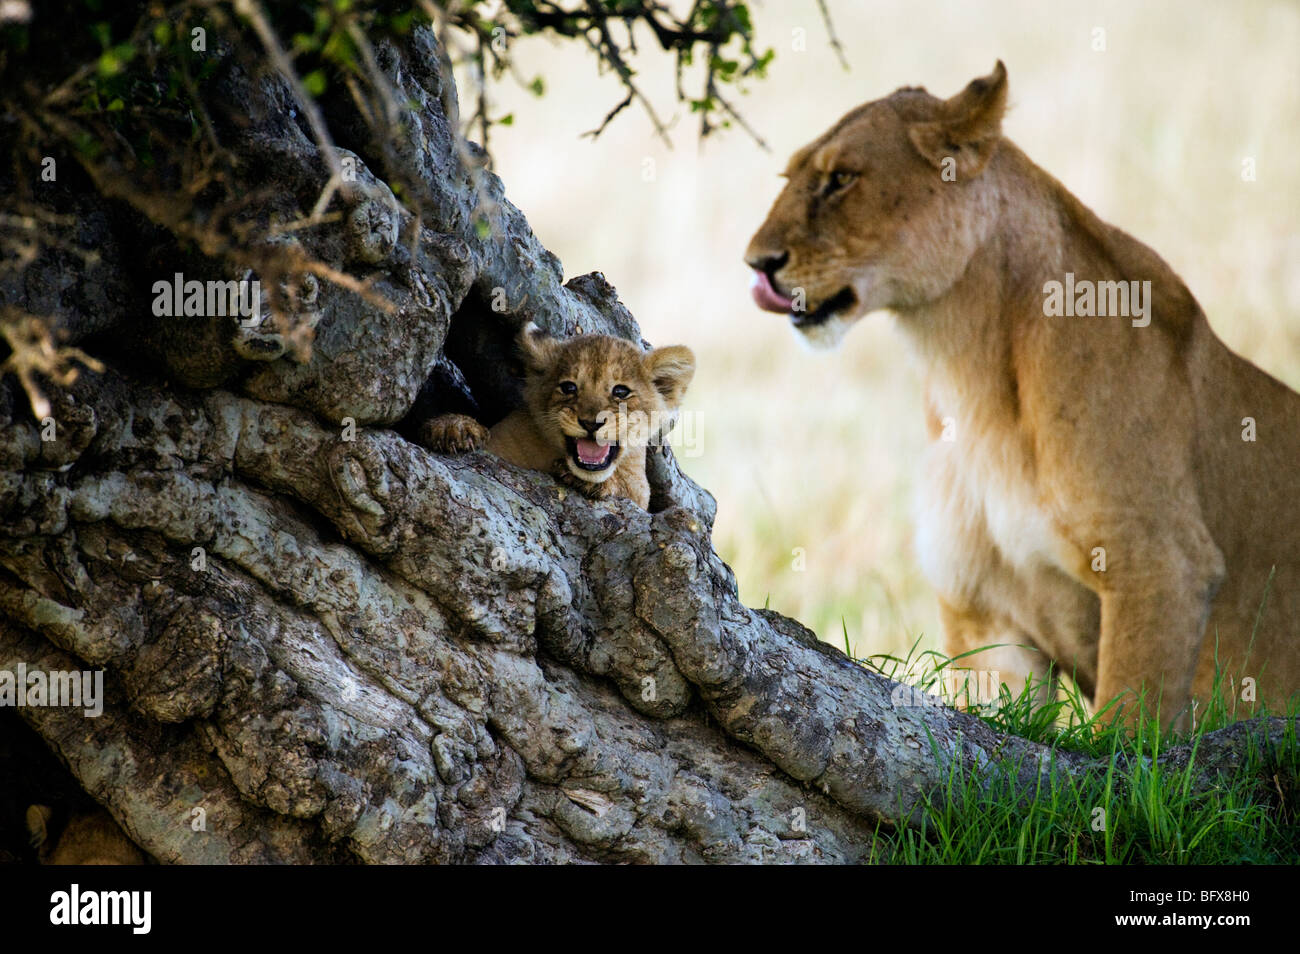 Lion Cub in Tree Trunk - Stock Image